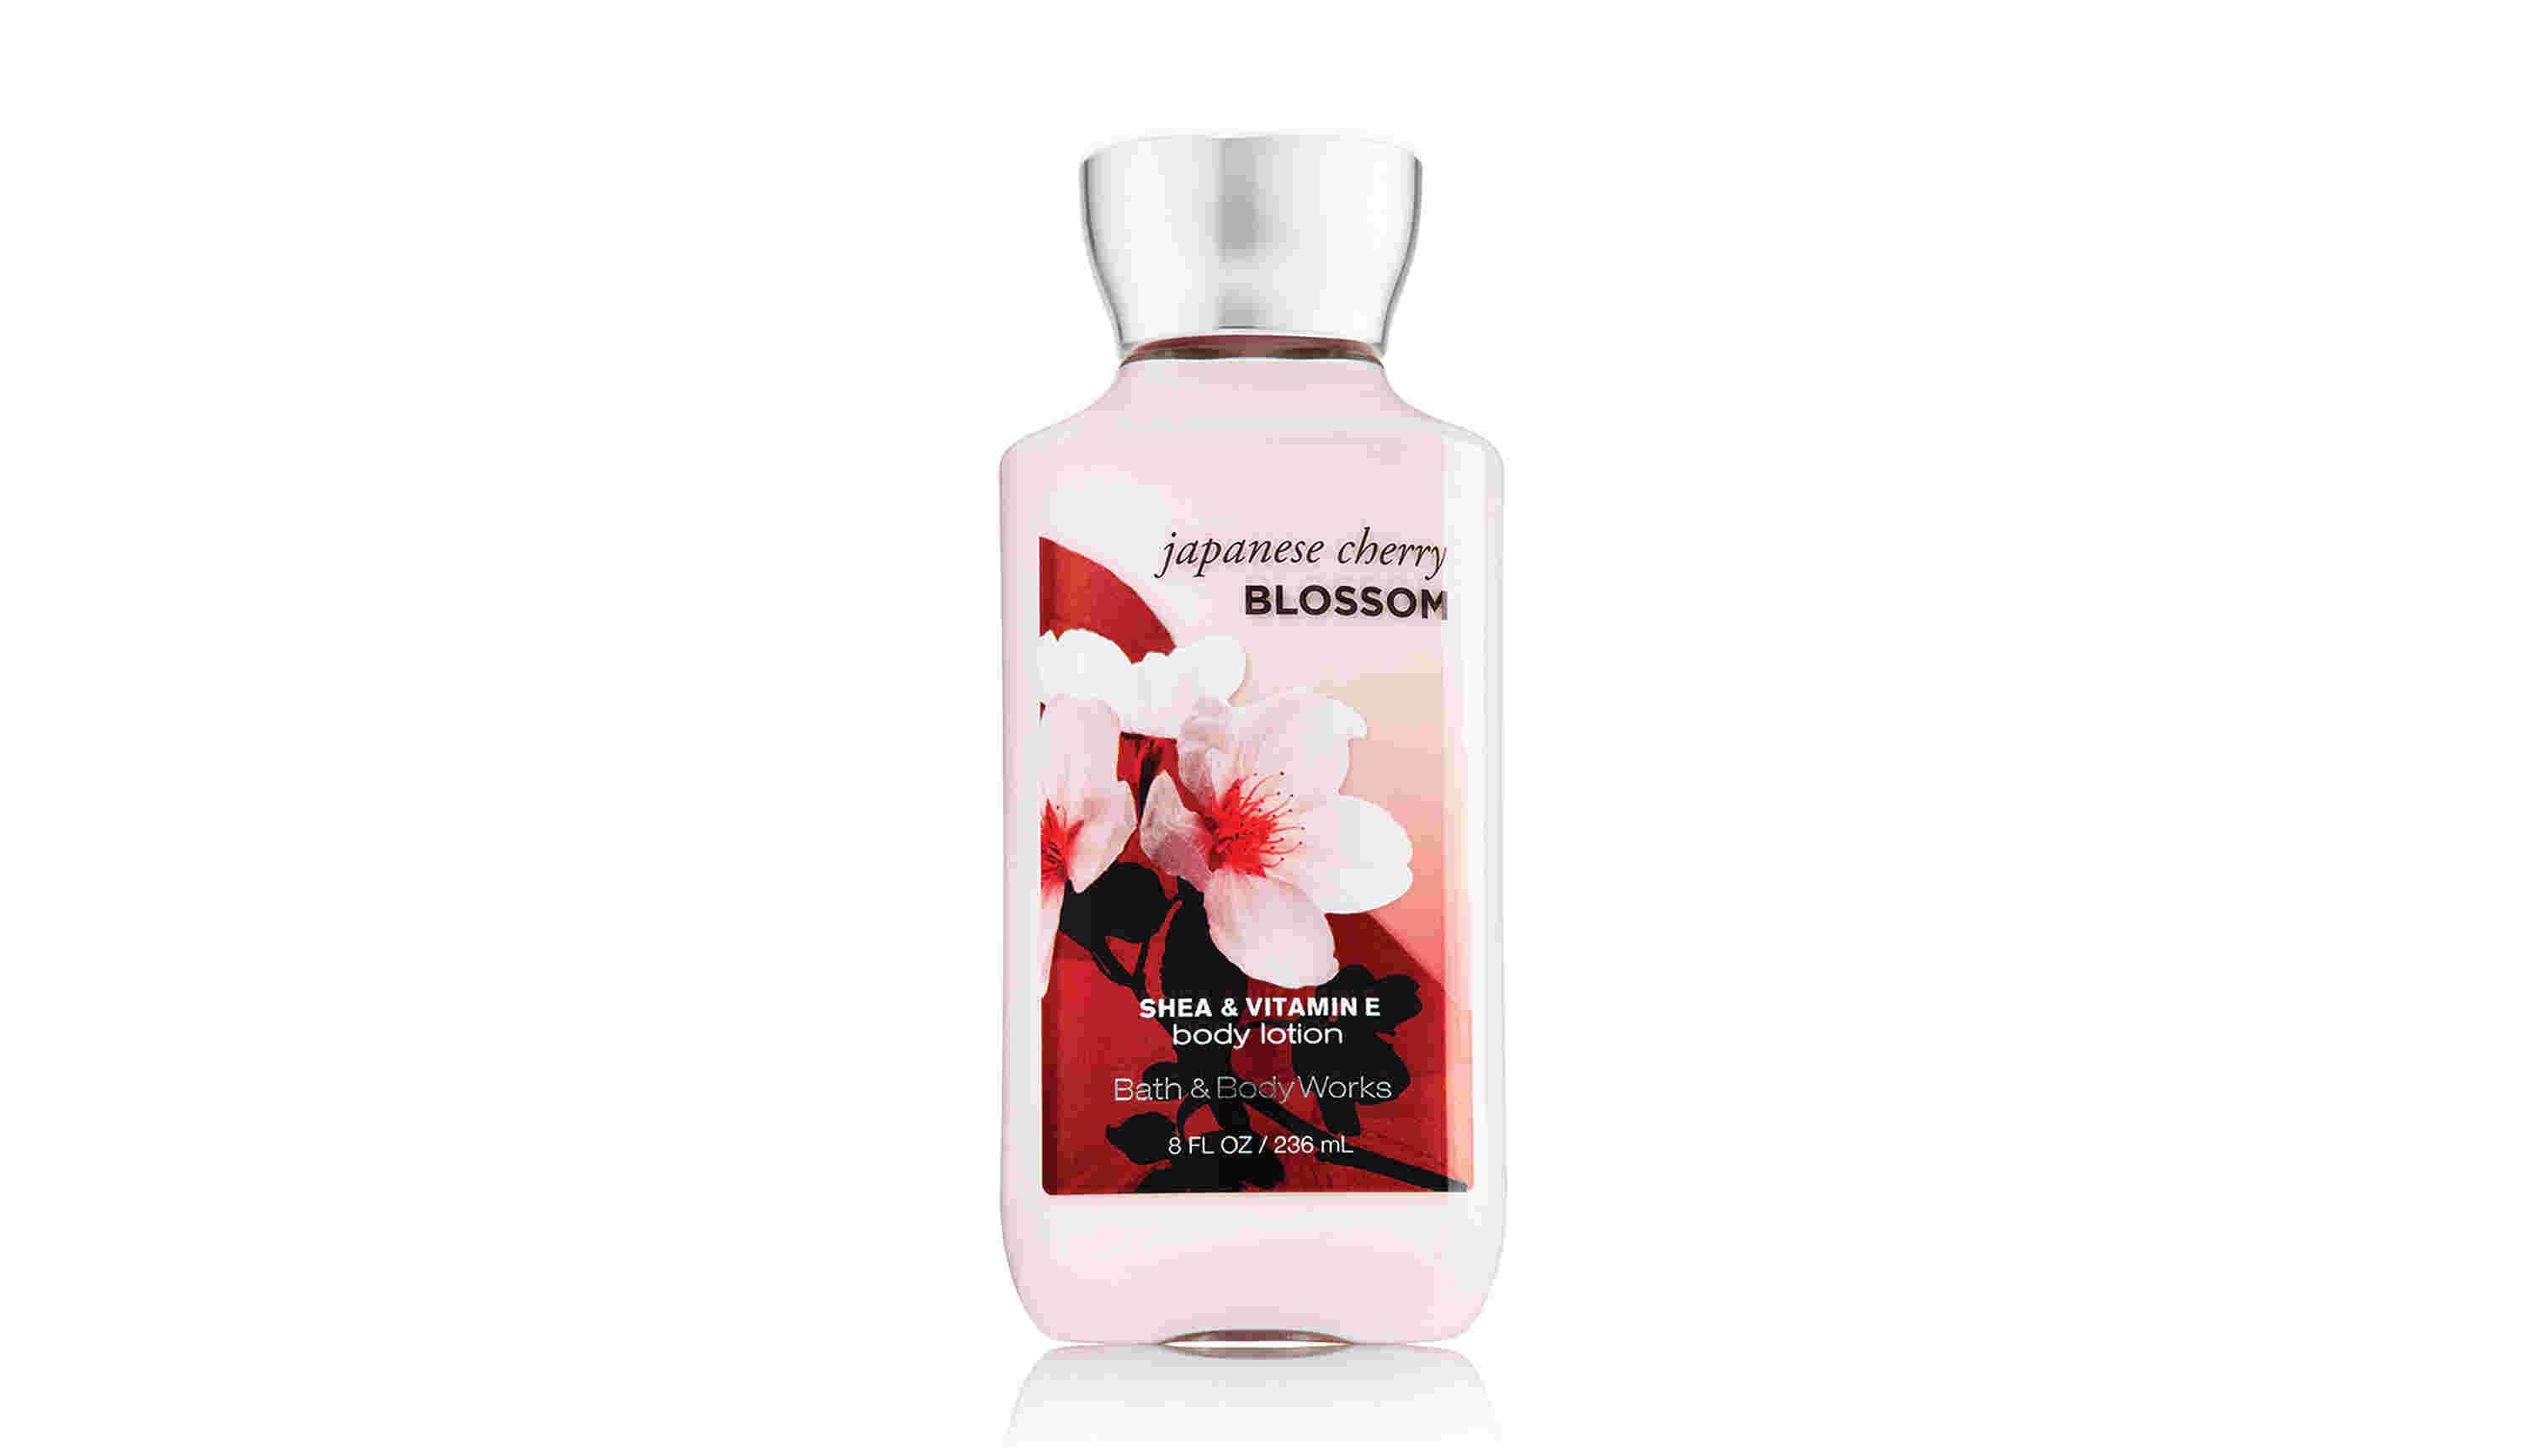 Japanese Cherry Blossom Full Size Bottle Body Lotion